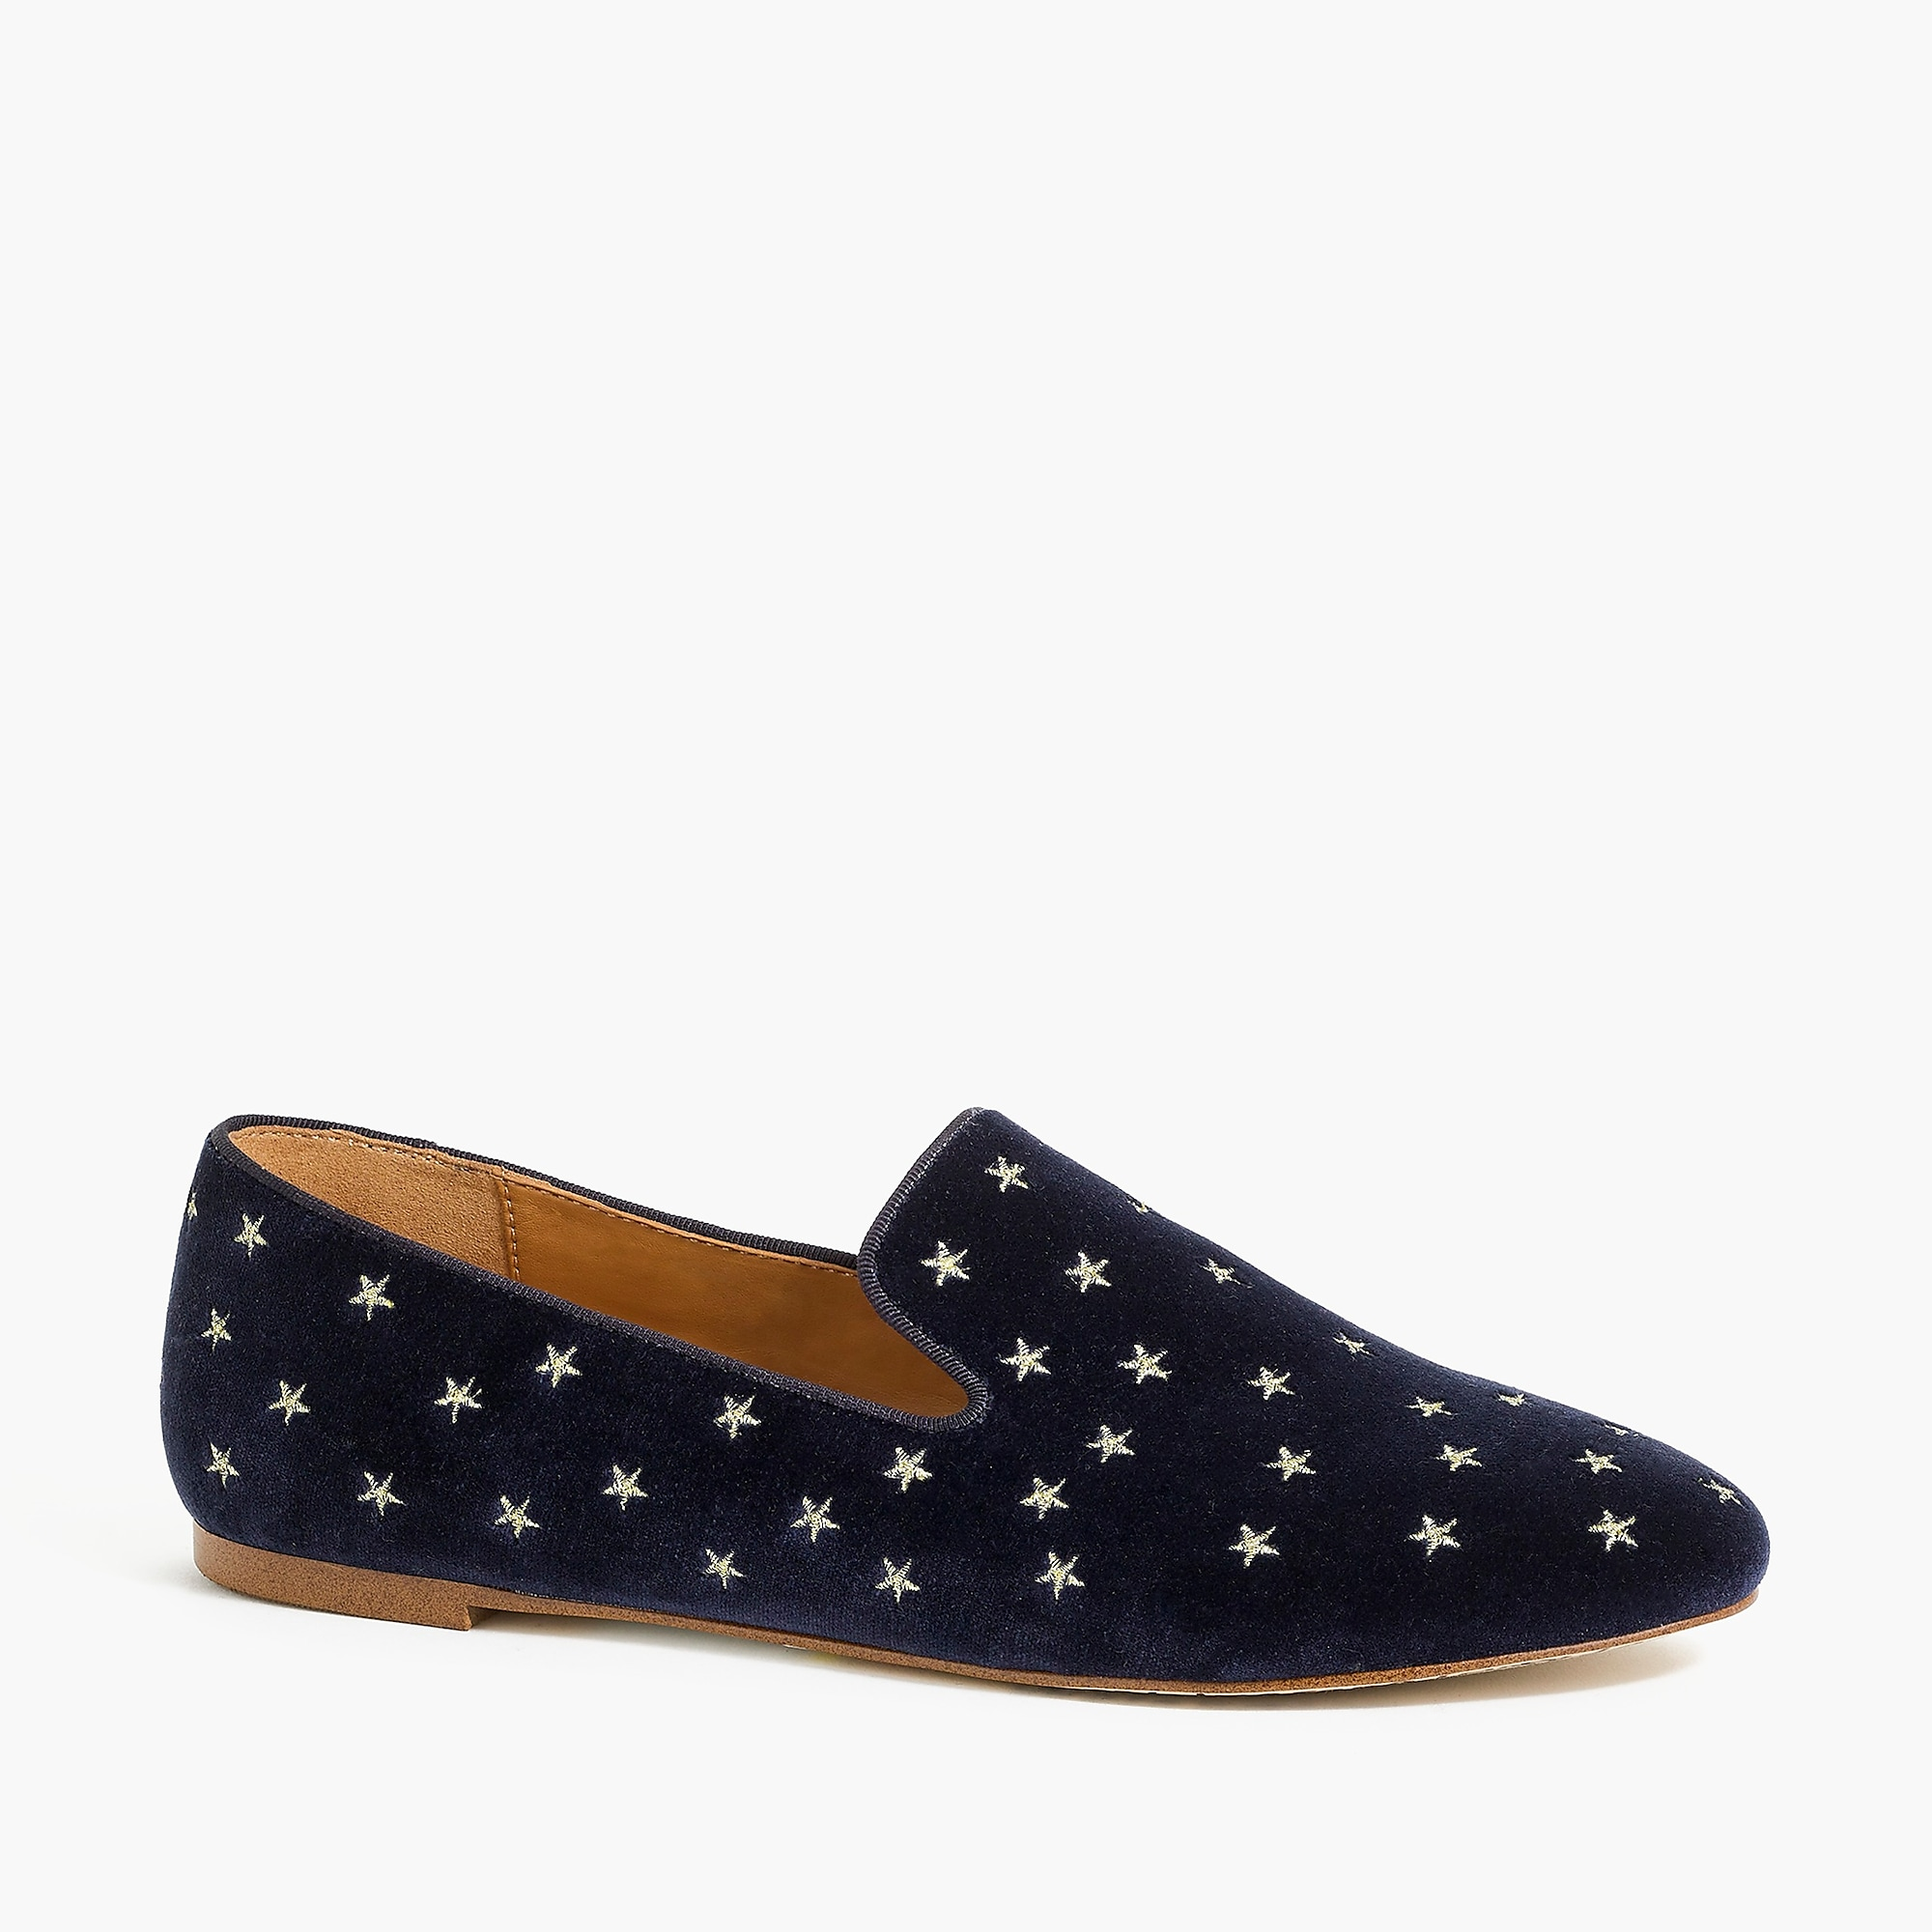 Velvet embroidered smoking loafers